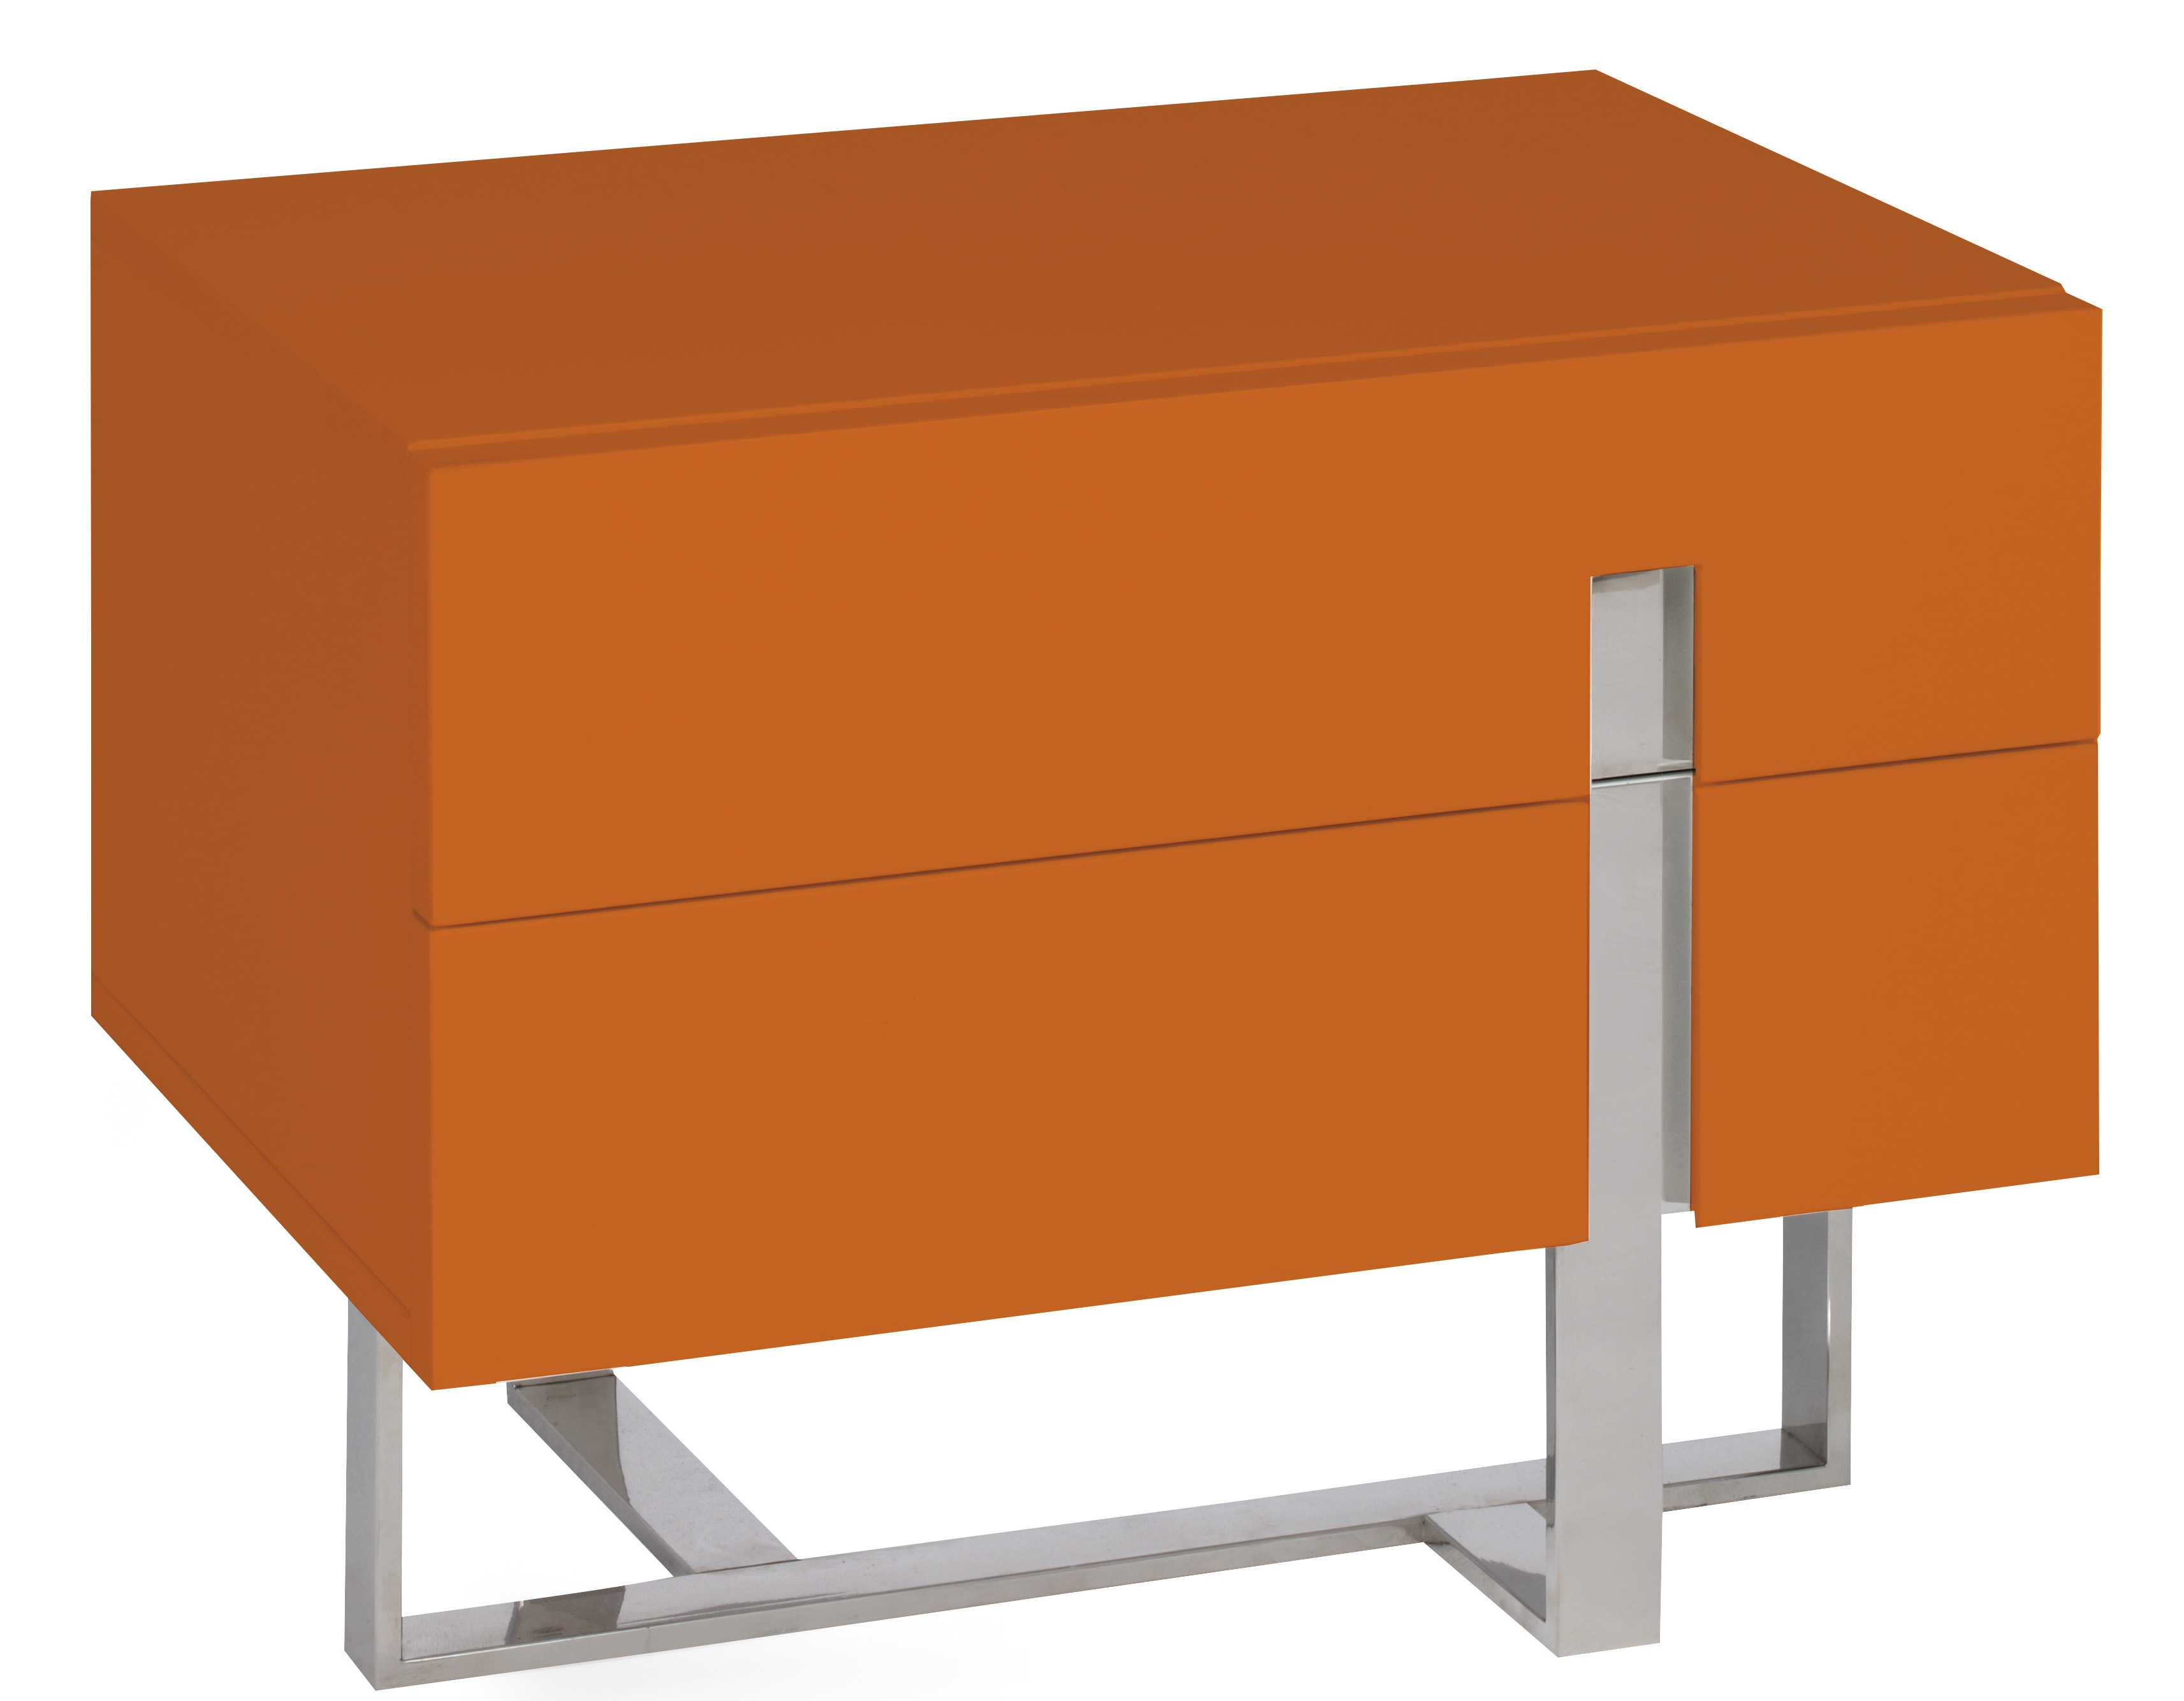 Table de chevet moderne orange laqu et acier dezina - Table de chevet laque ...